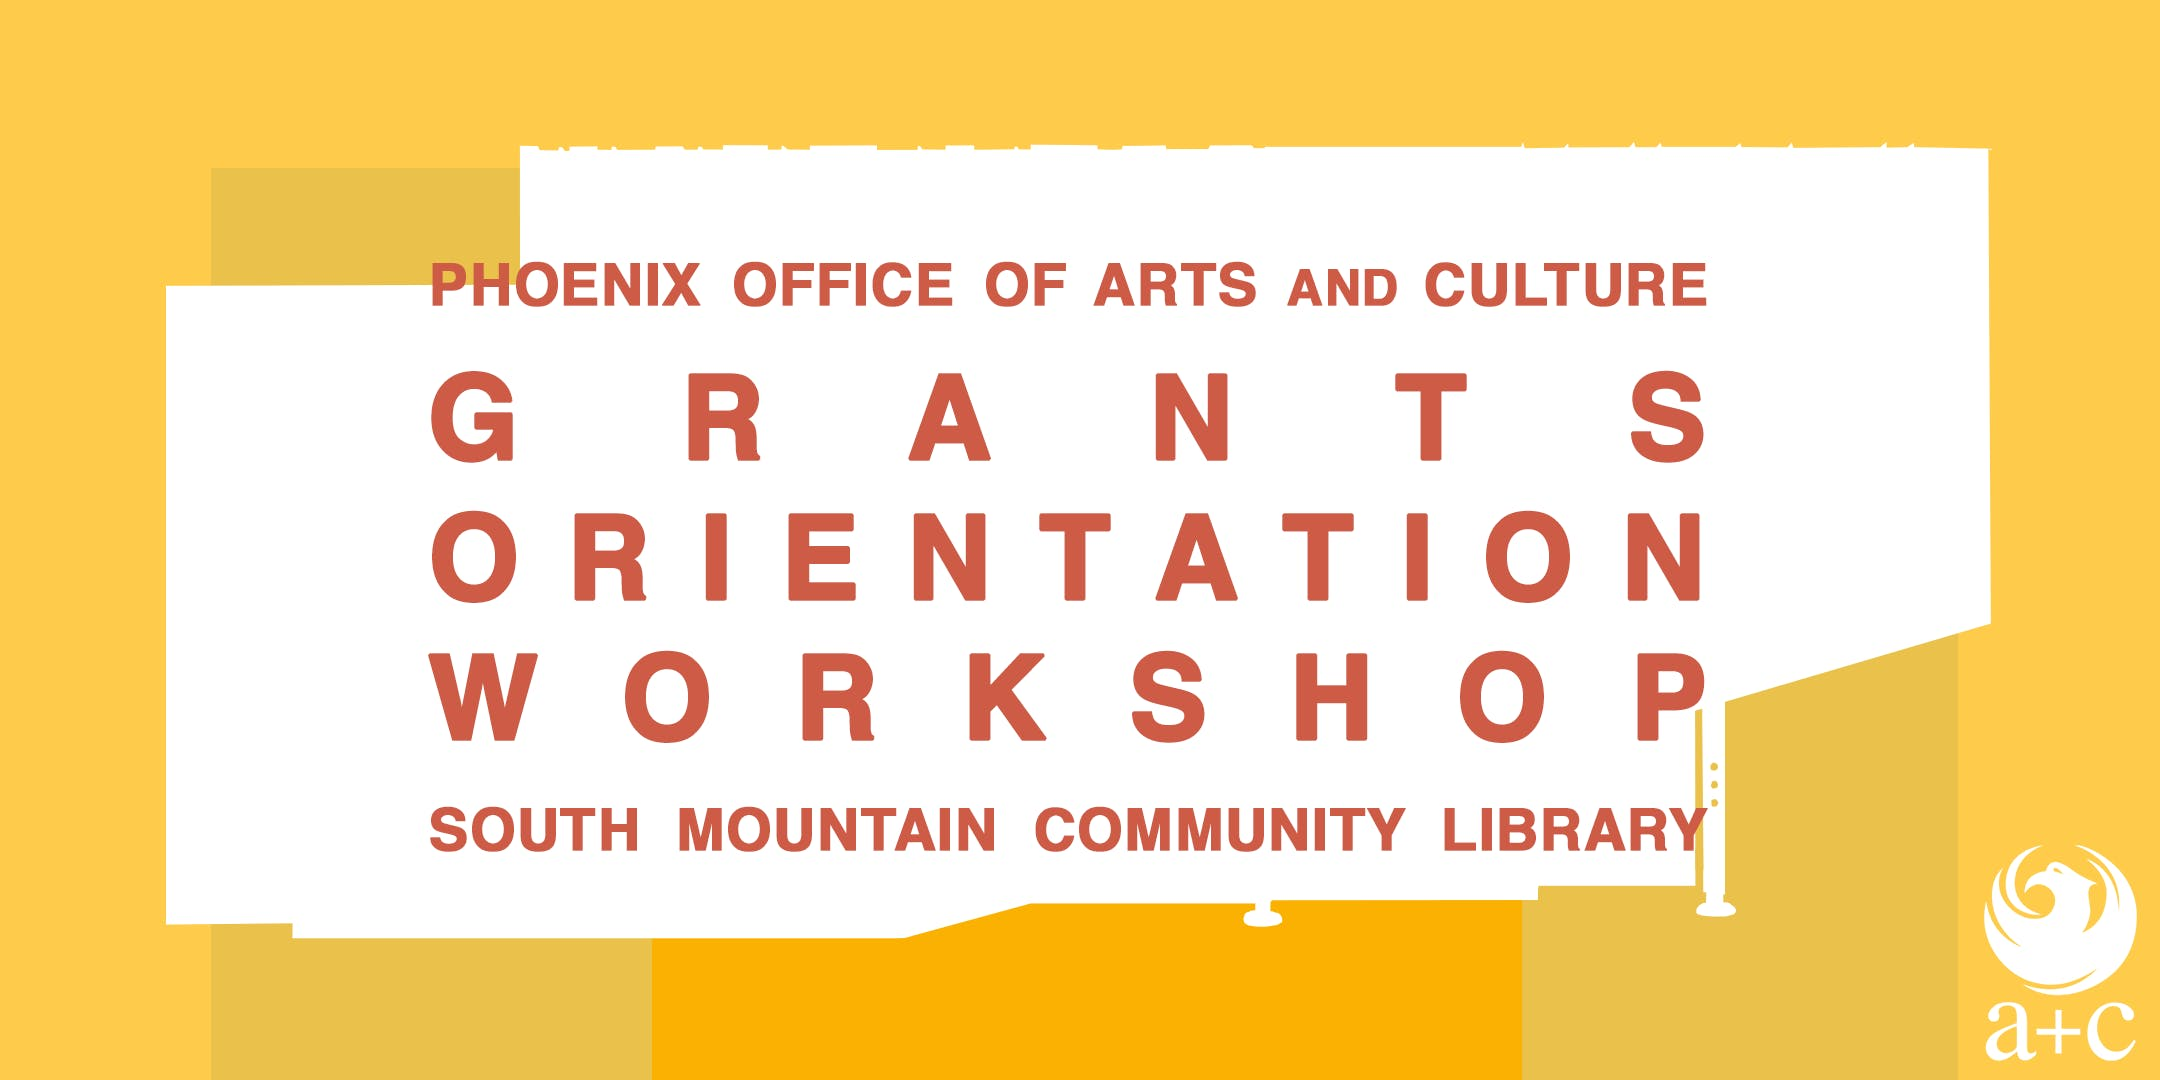 Grants Orientation Workshop at South Mountain Community Library